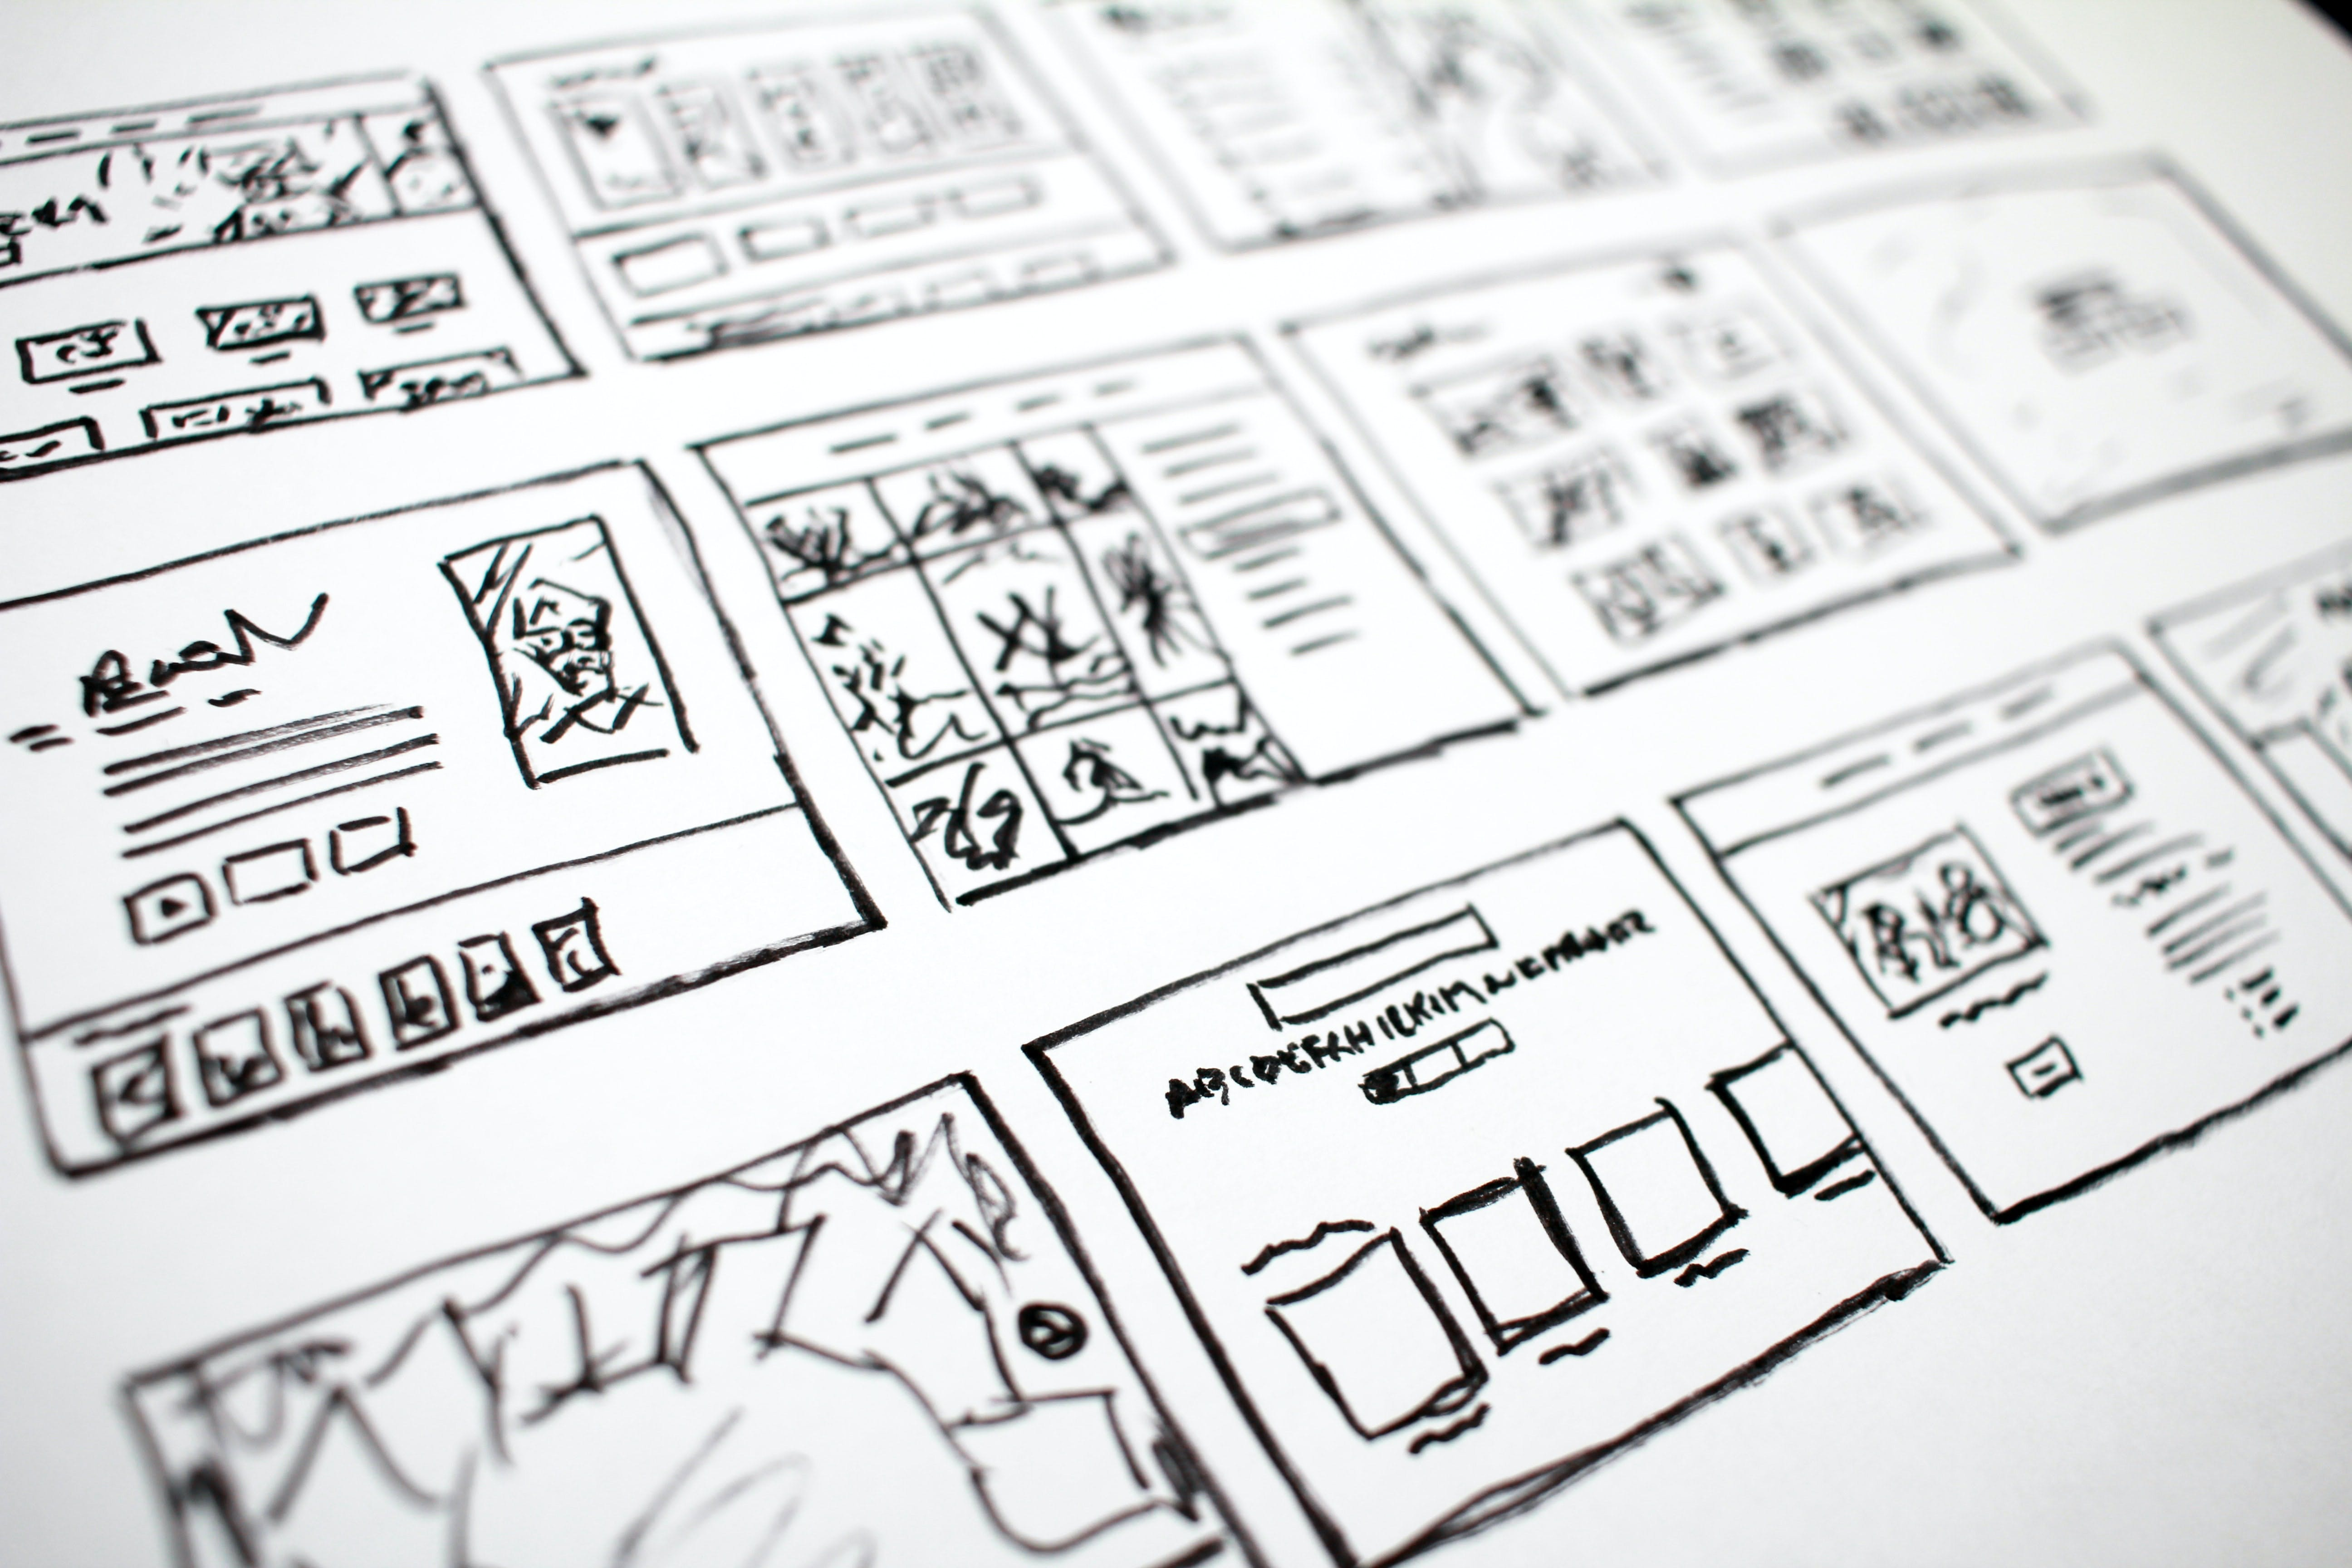 Sample storyboard for making a YouTube video